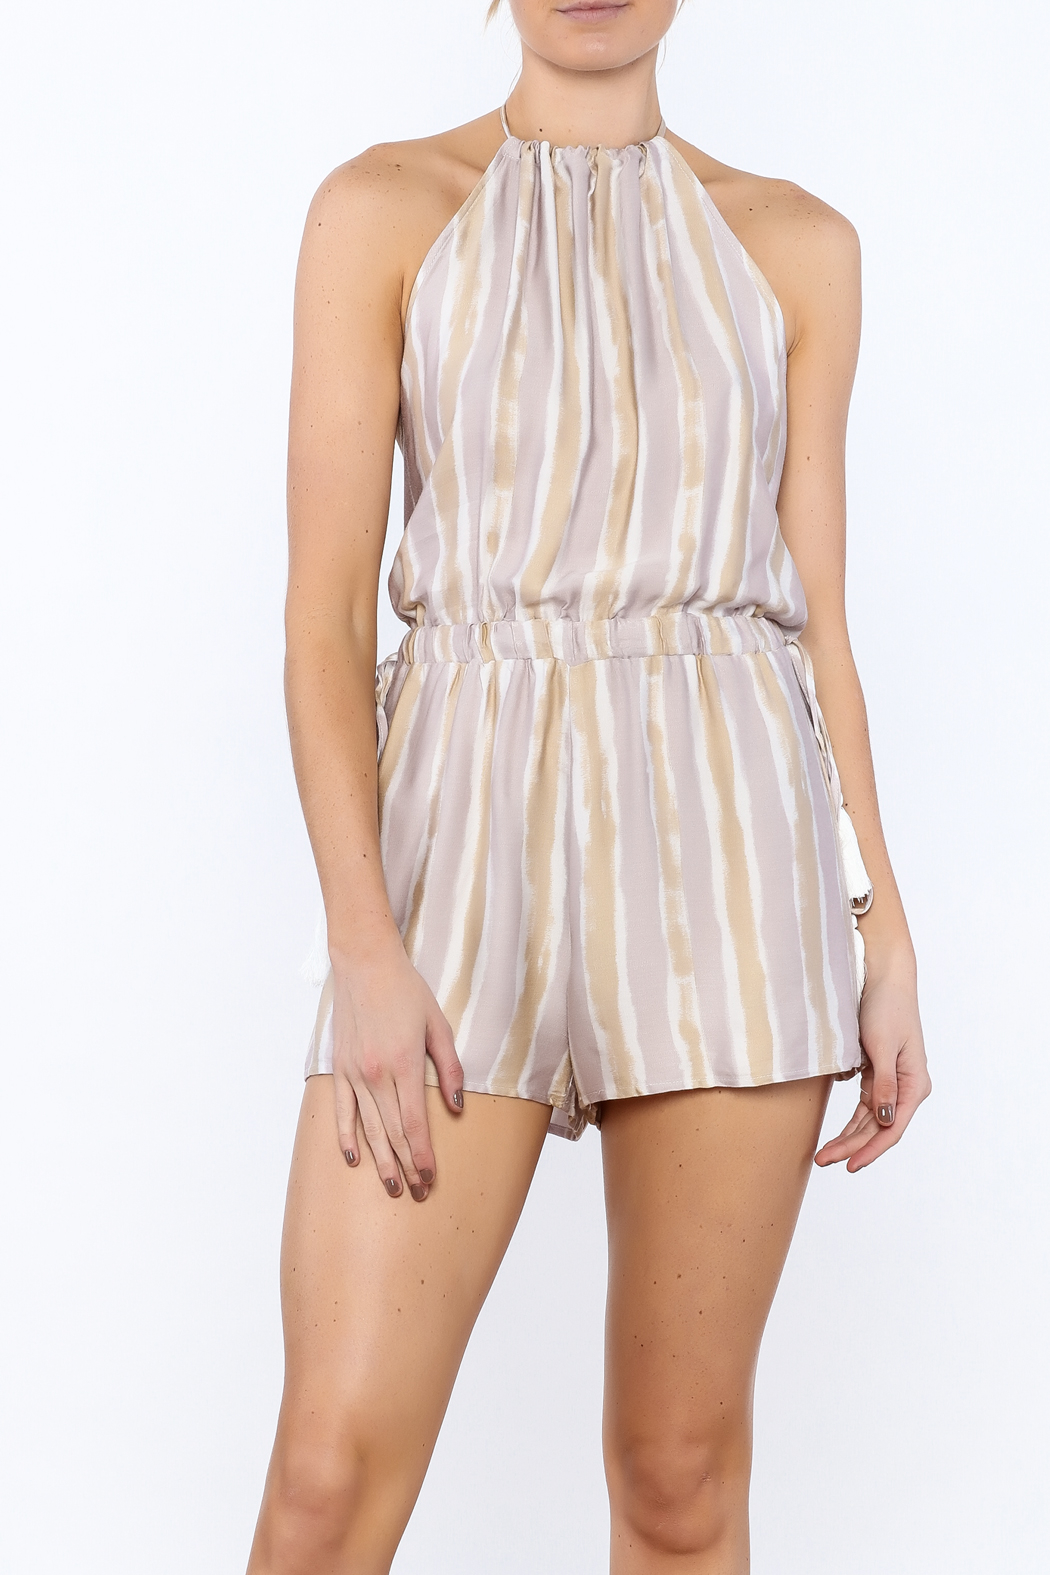 Honey Punch Playful Poolside Romper - Main Image